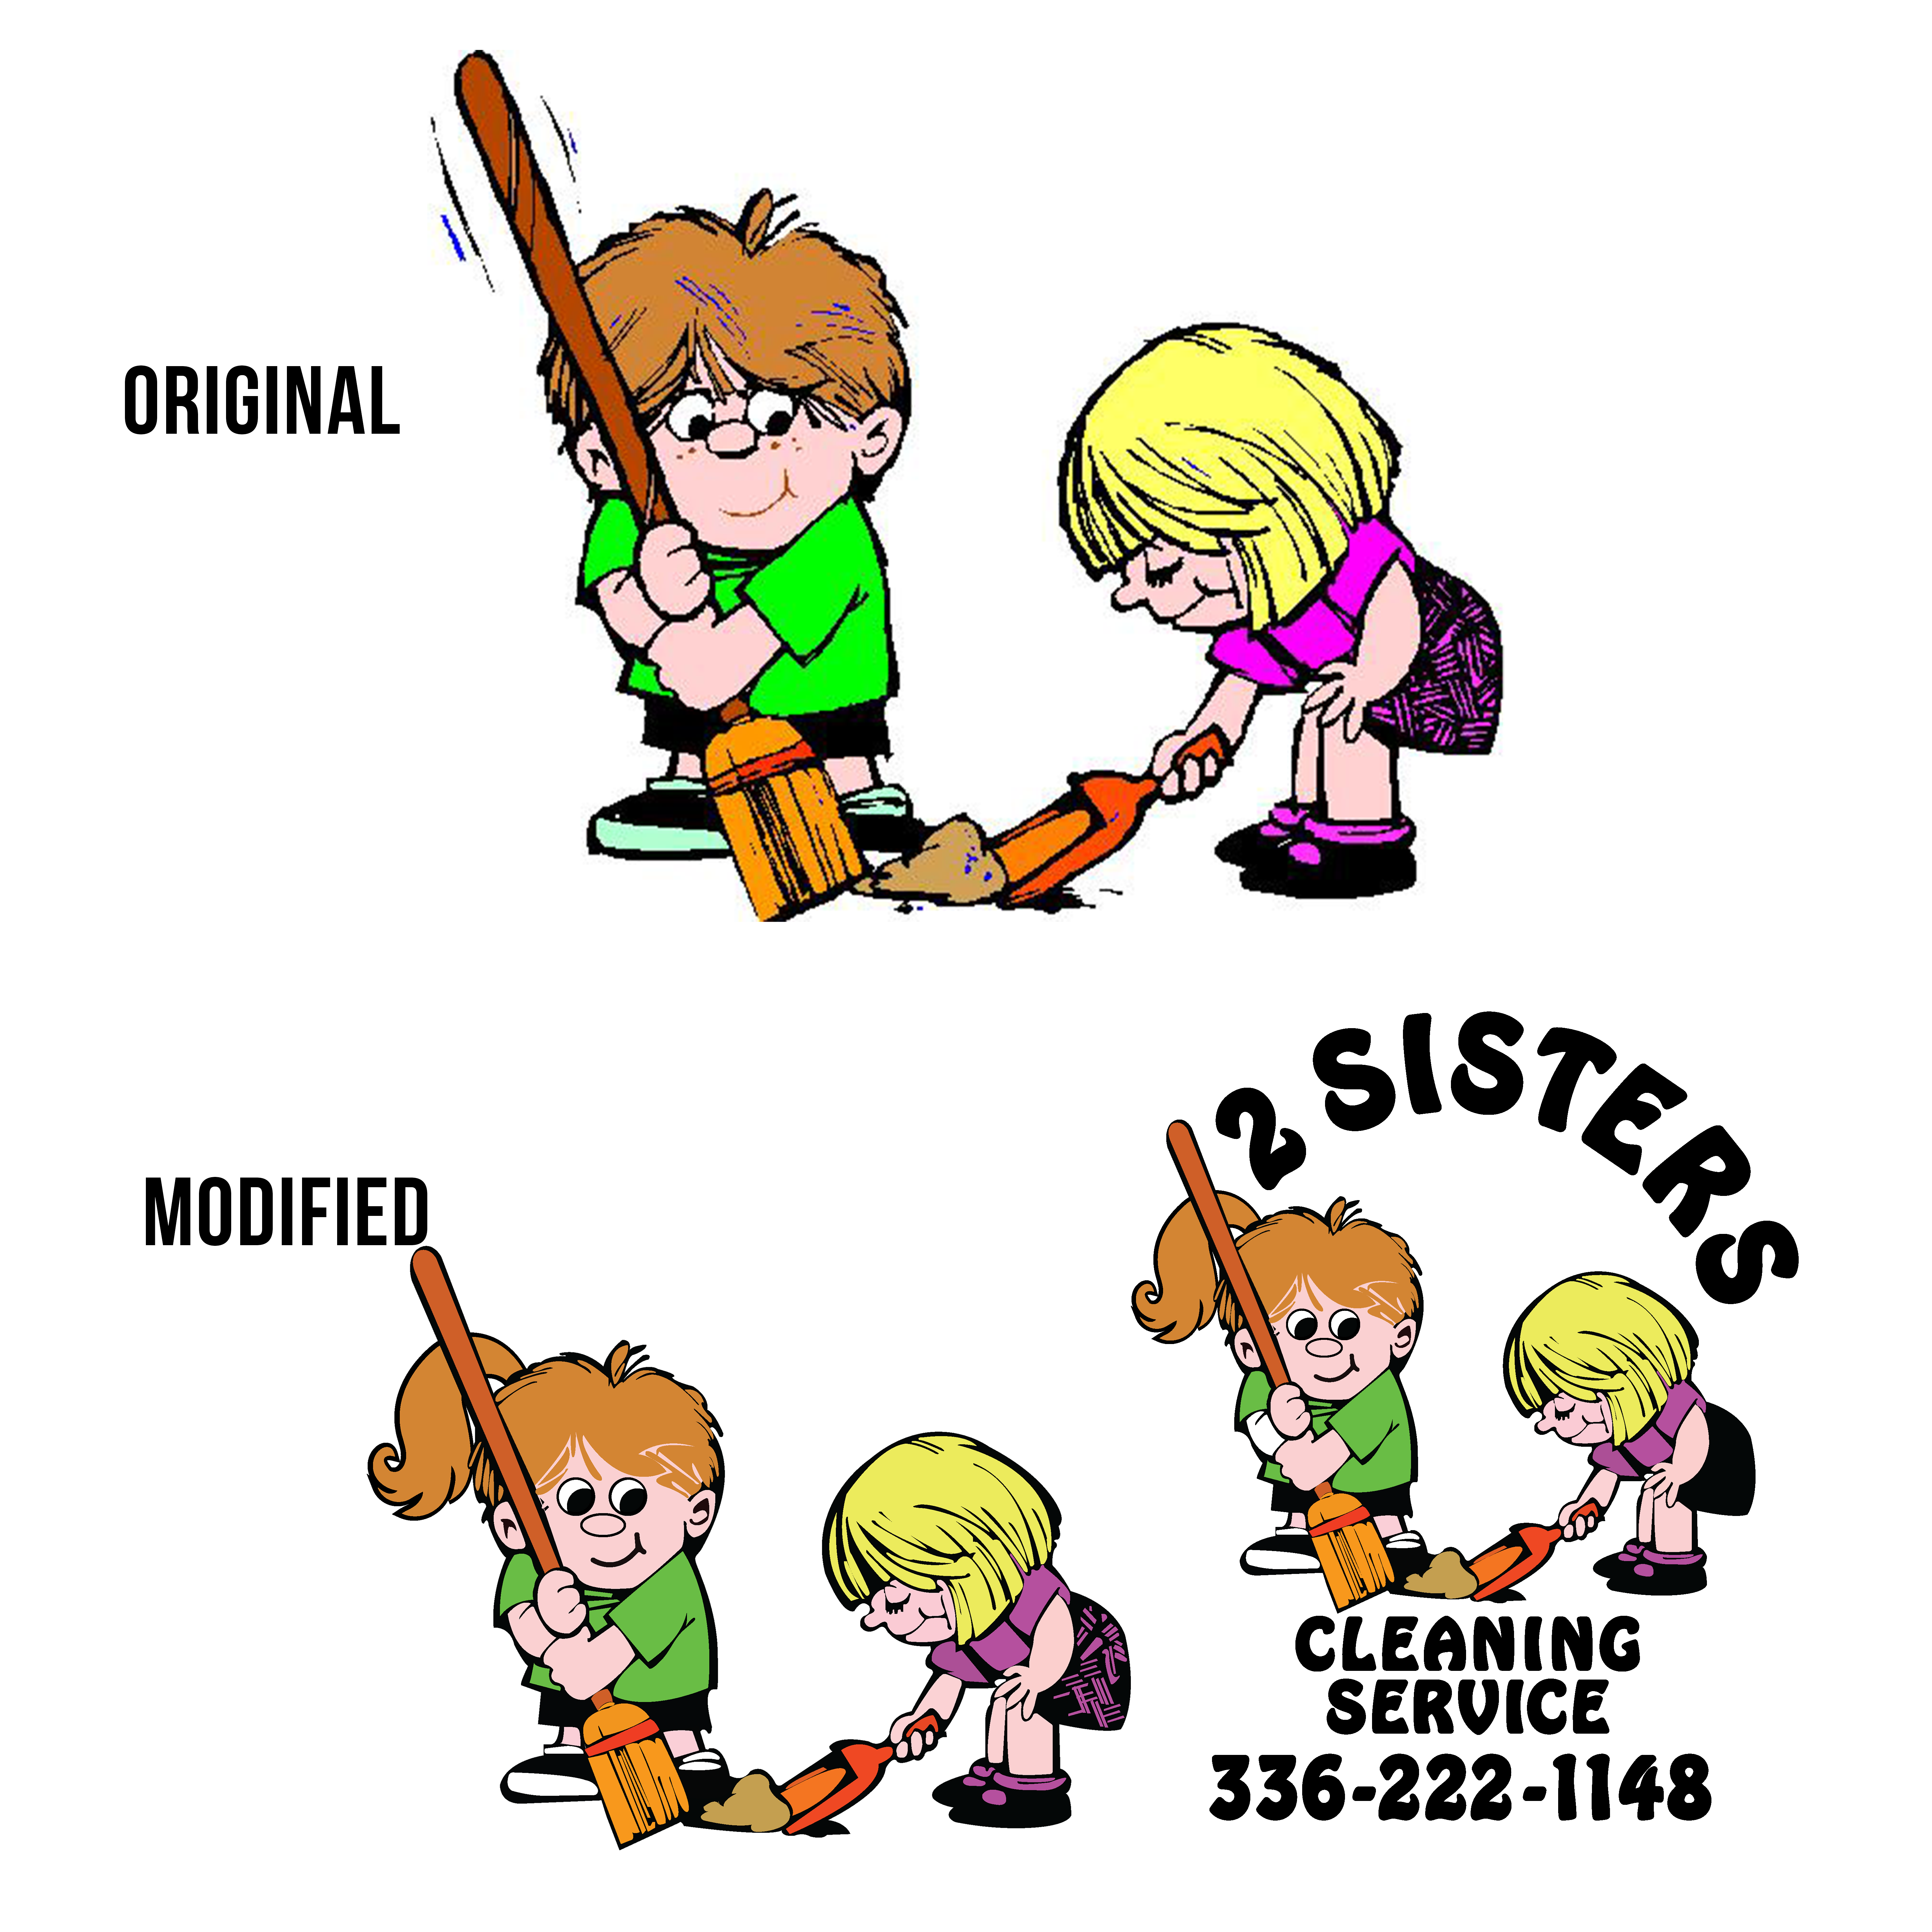 2 Sisters Cleaning Service